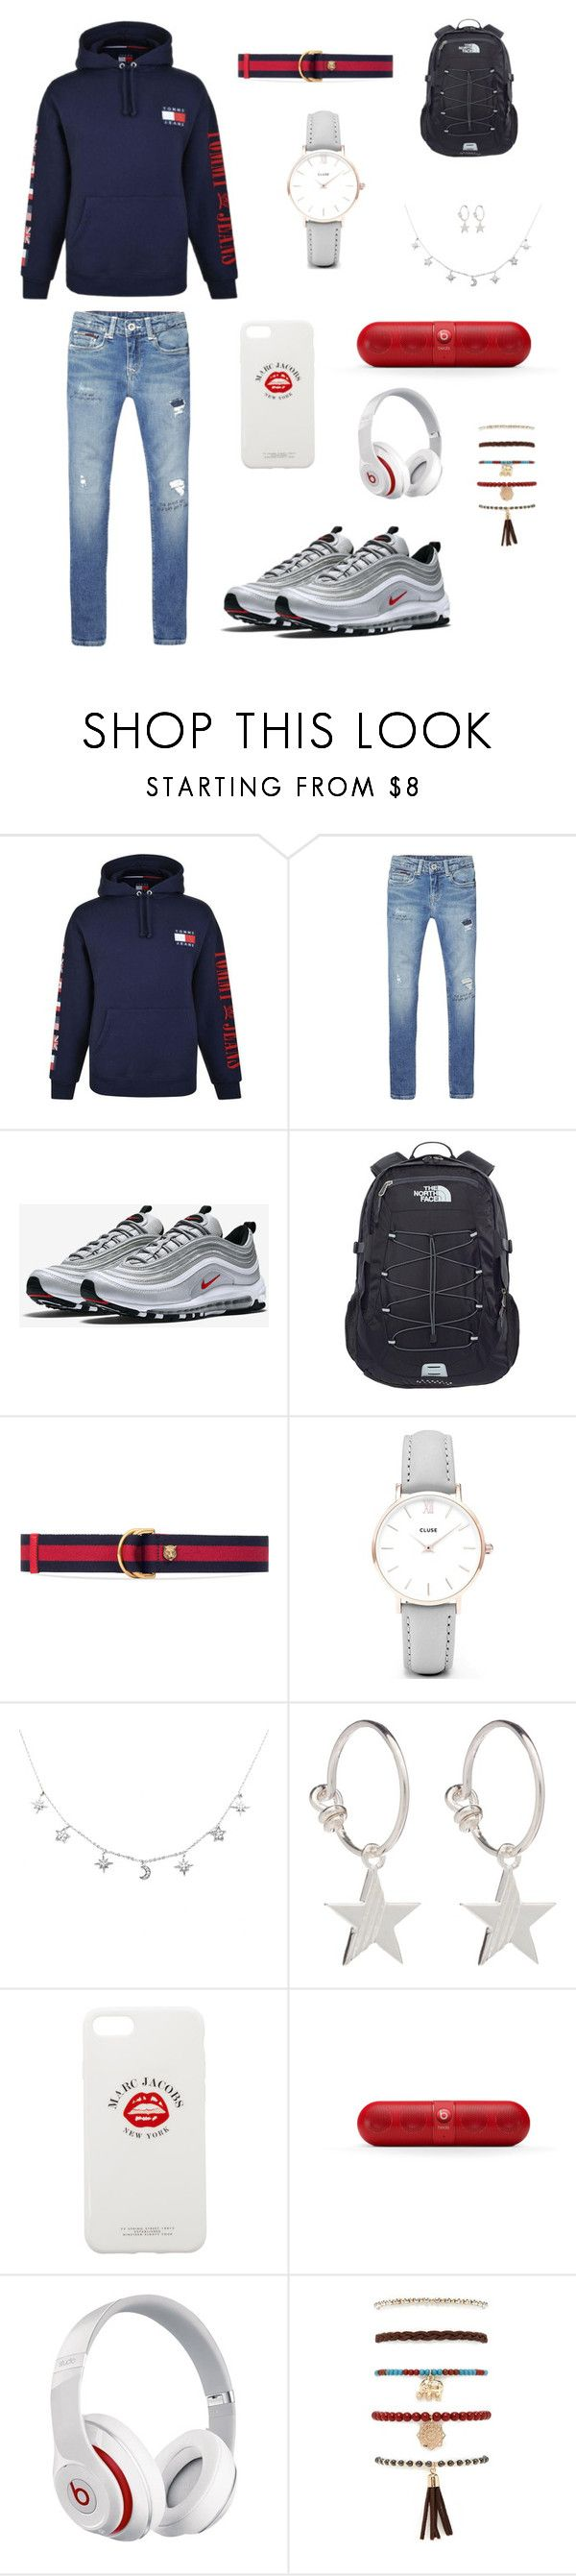 """""""Geen titel #33"""" by manoukh ❤ liked on Polyvore featuring Tommy Hilfiger, NIKE, The North Face, Gucci, CLUSE, Rachel Jackson, Marc Jacobs, Beats by Dr. Dre and Forever 21"""